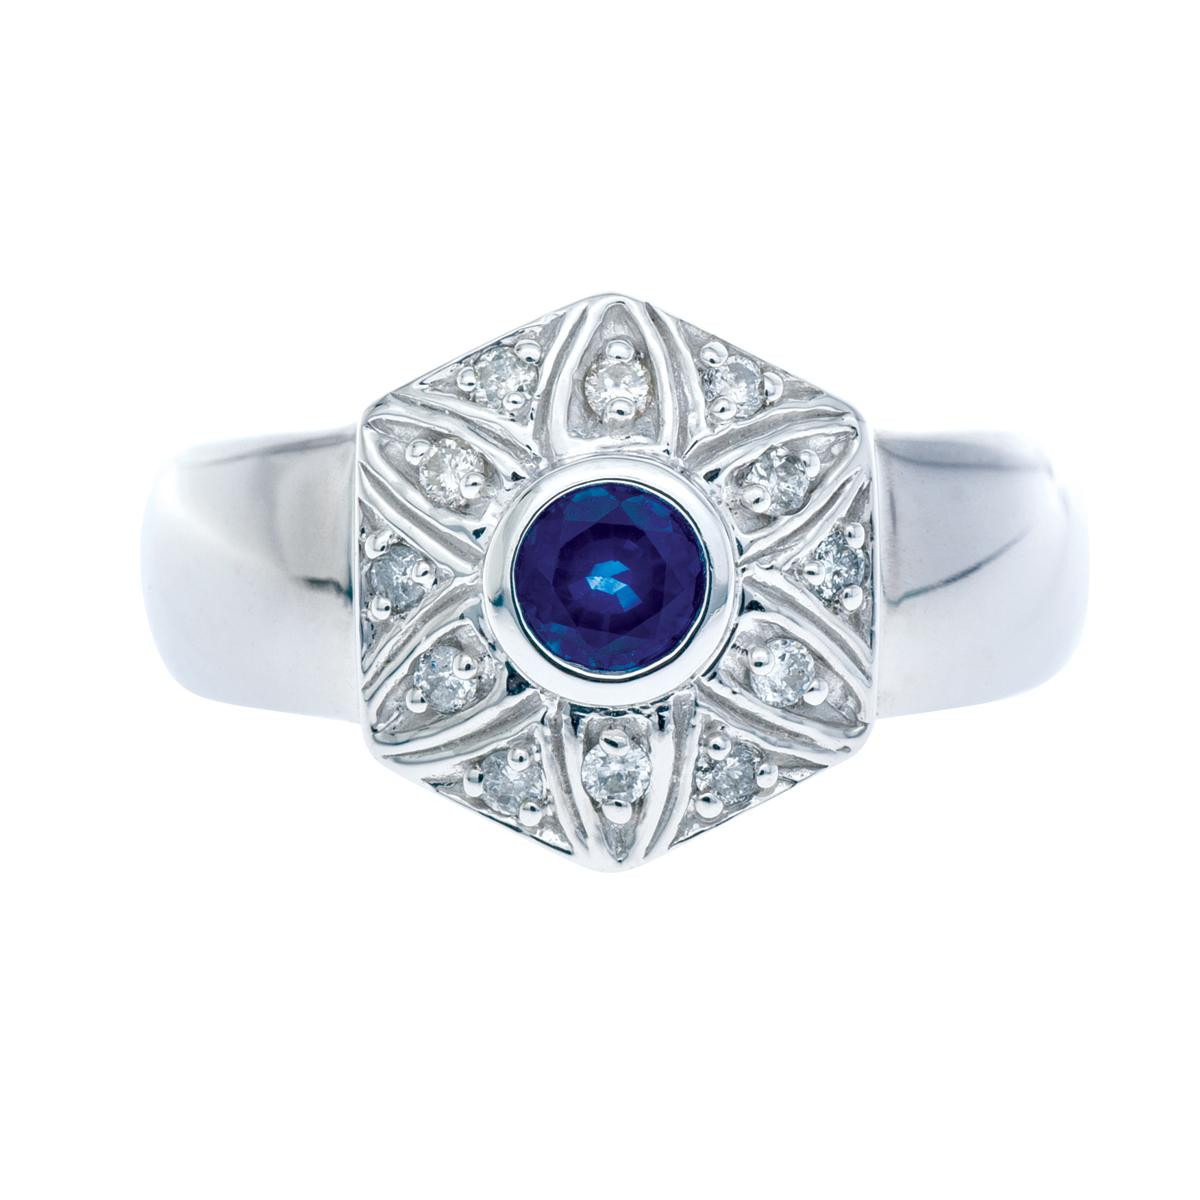 Vintage 0.24 CT Blue Sapphire Flower Ring